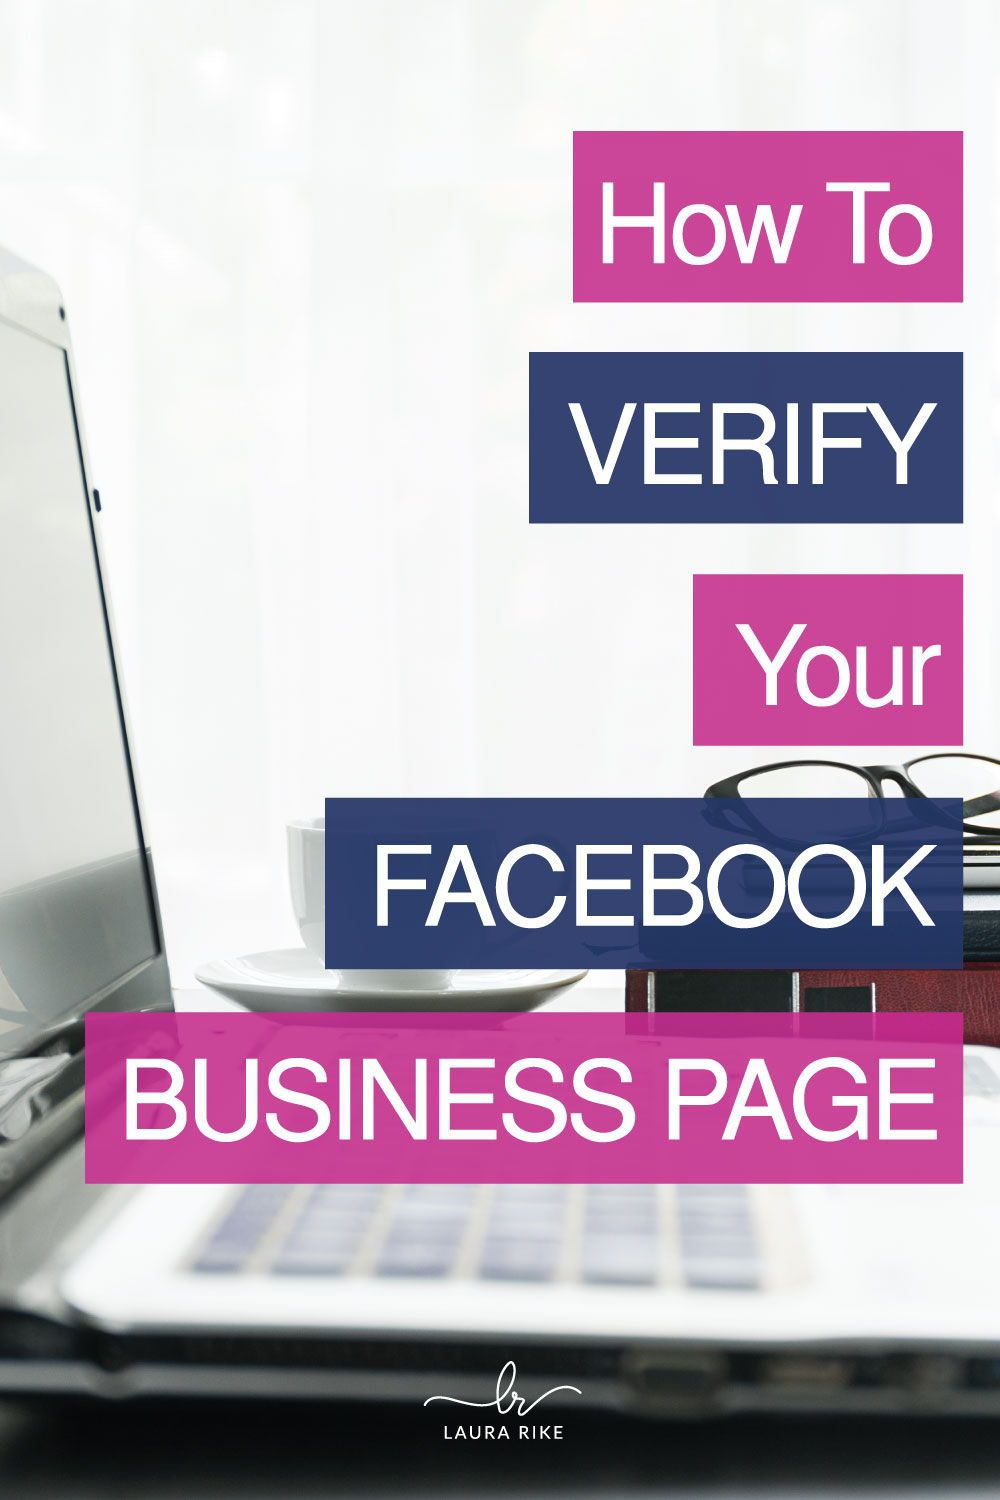 How To Verify your Facebook Page on Facebook Business